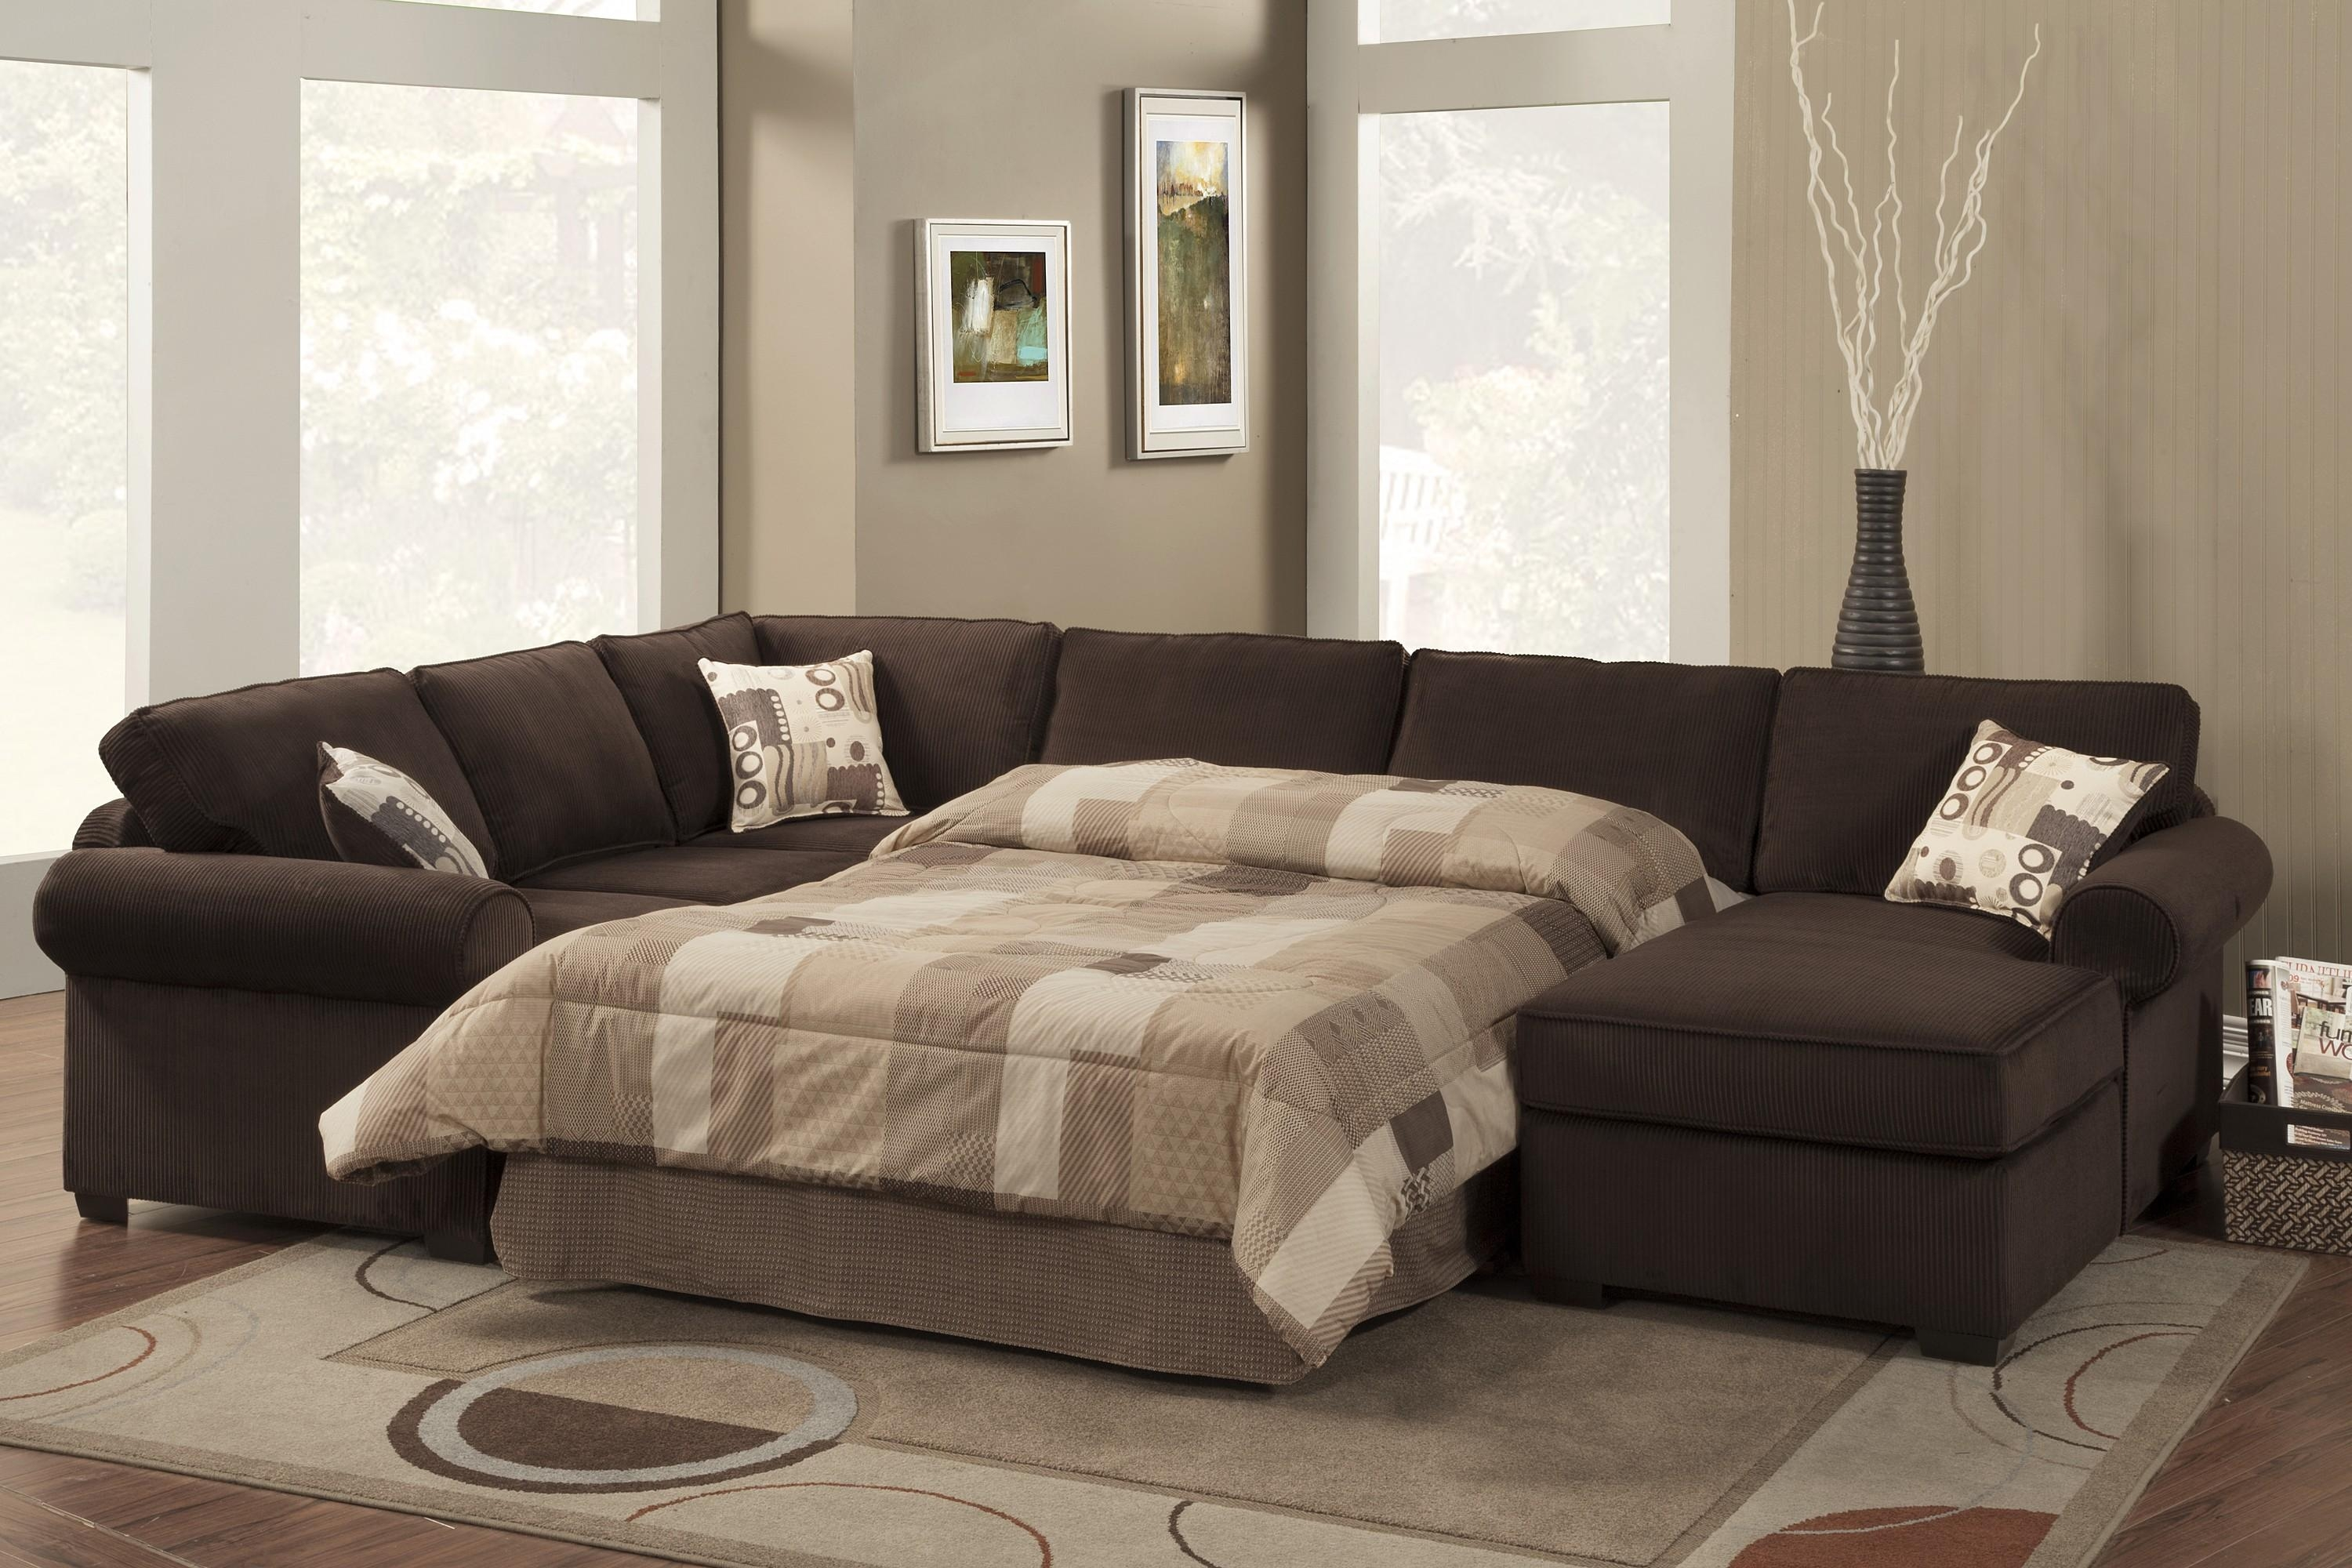 Sectional Sofa Sleepers For Better Sleep Quality And Comfort With Regard To Soft Sectional Sofas (View 11 of 20)